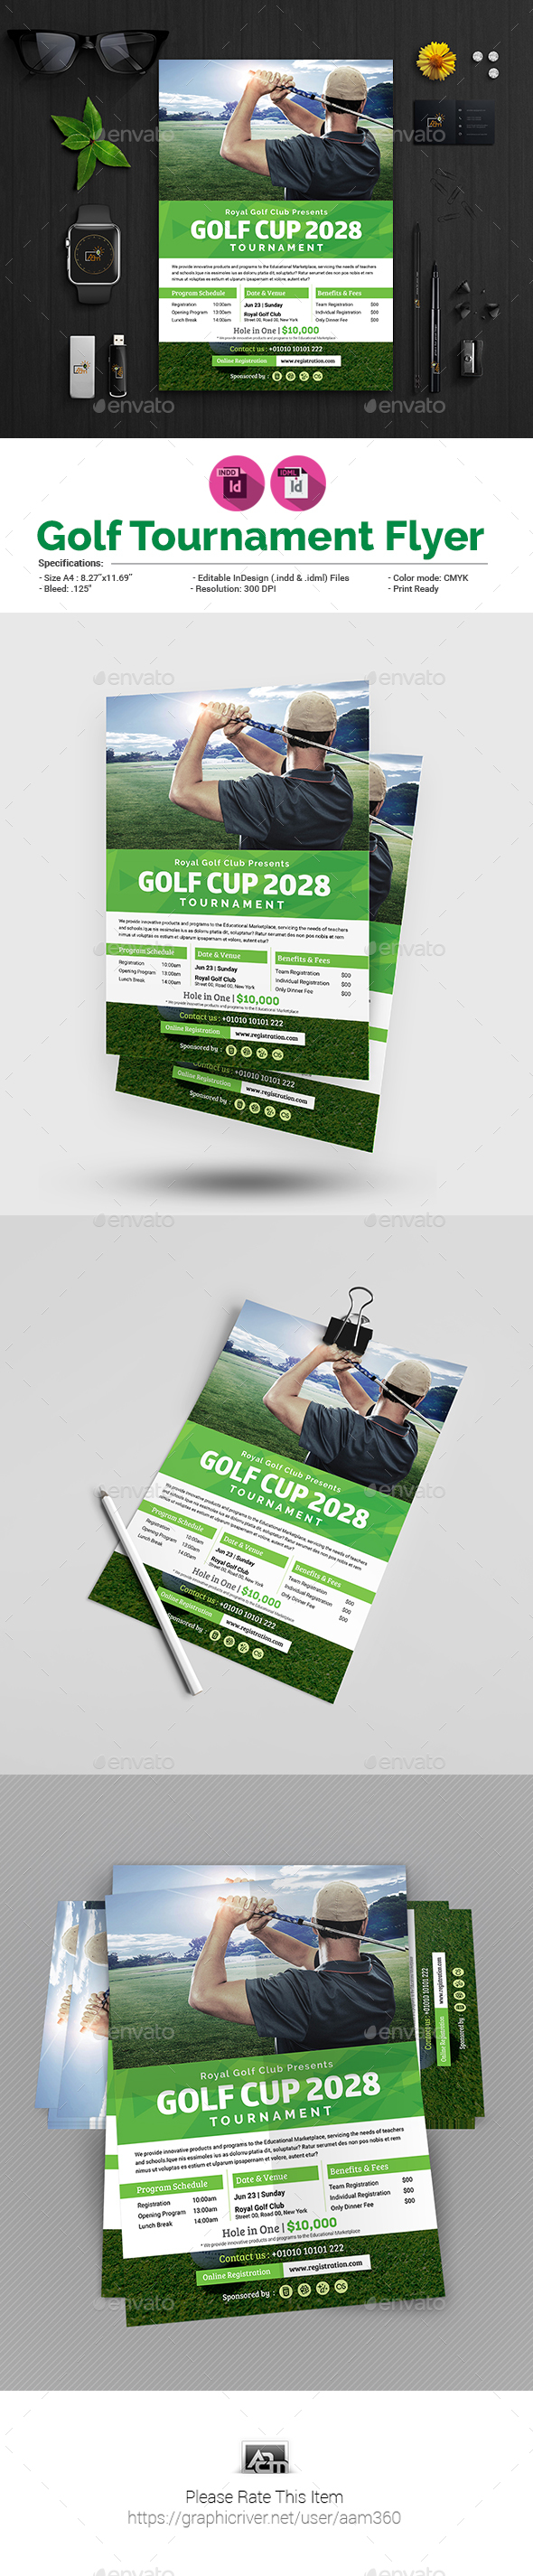 Charity Golf Tournament Flyer - Sports Events